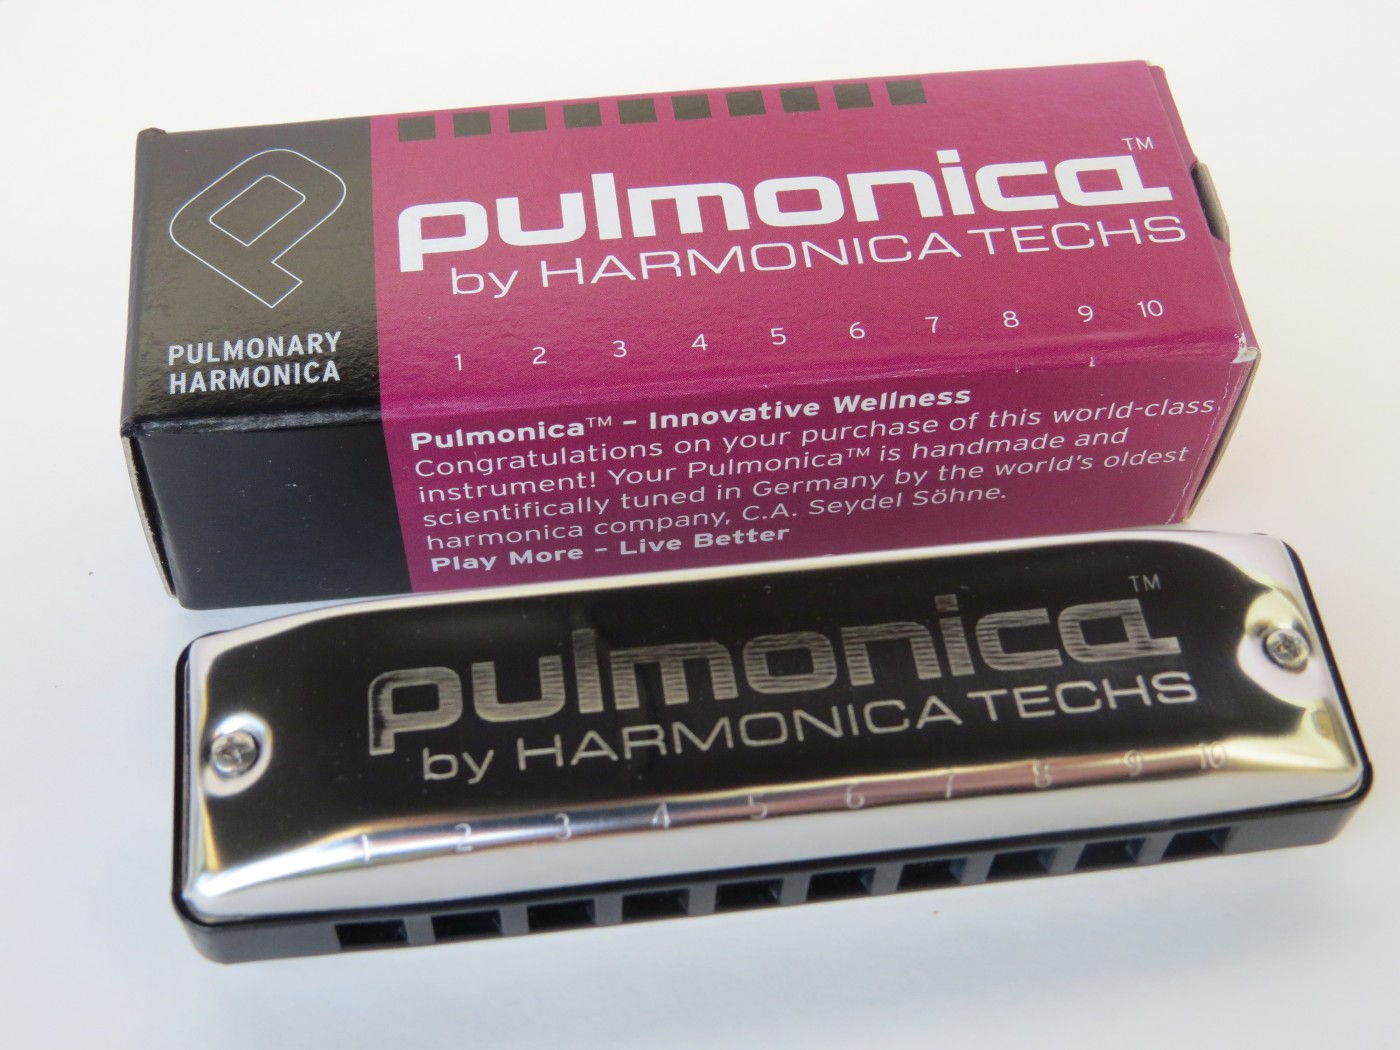 Pulmonica Harmonica Helps Patients Manage Asthma, COPD According To Experts